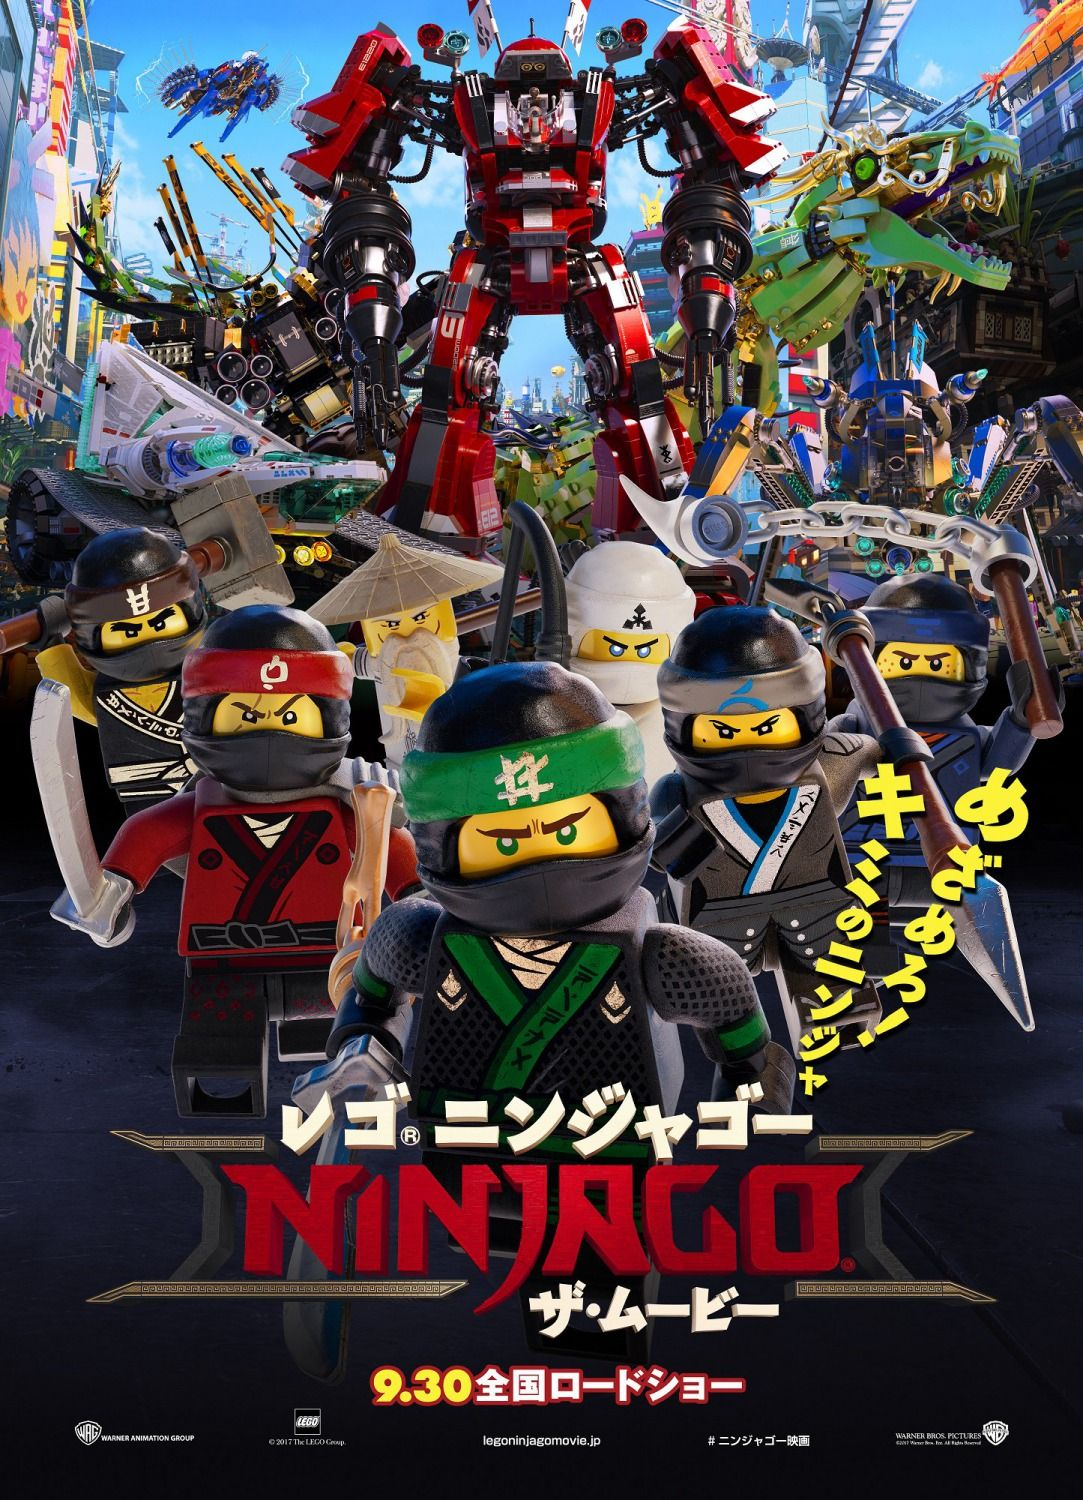 The Lego Ninjago Movie The Lego Ninjago Movie Japanese Poster Movies Tv Lego